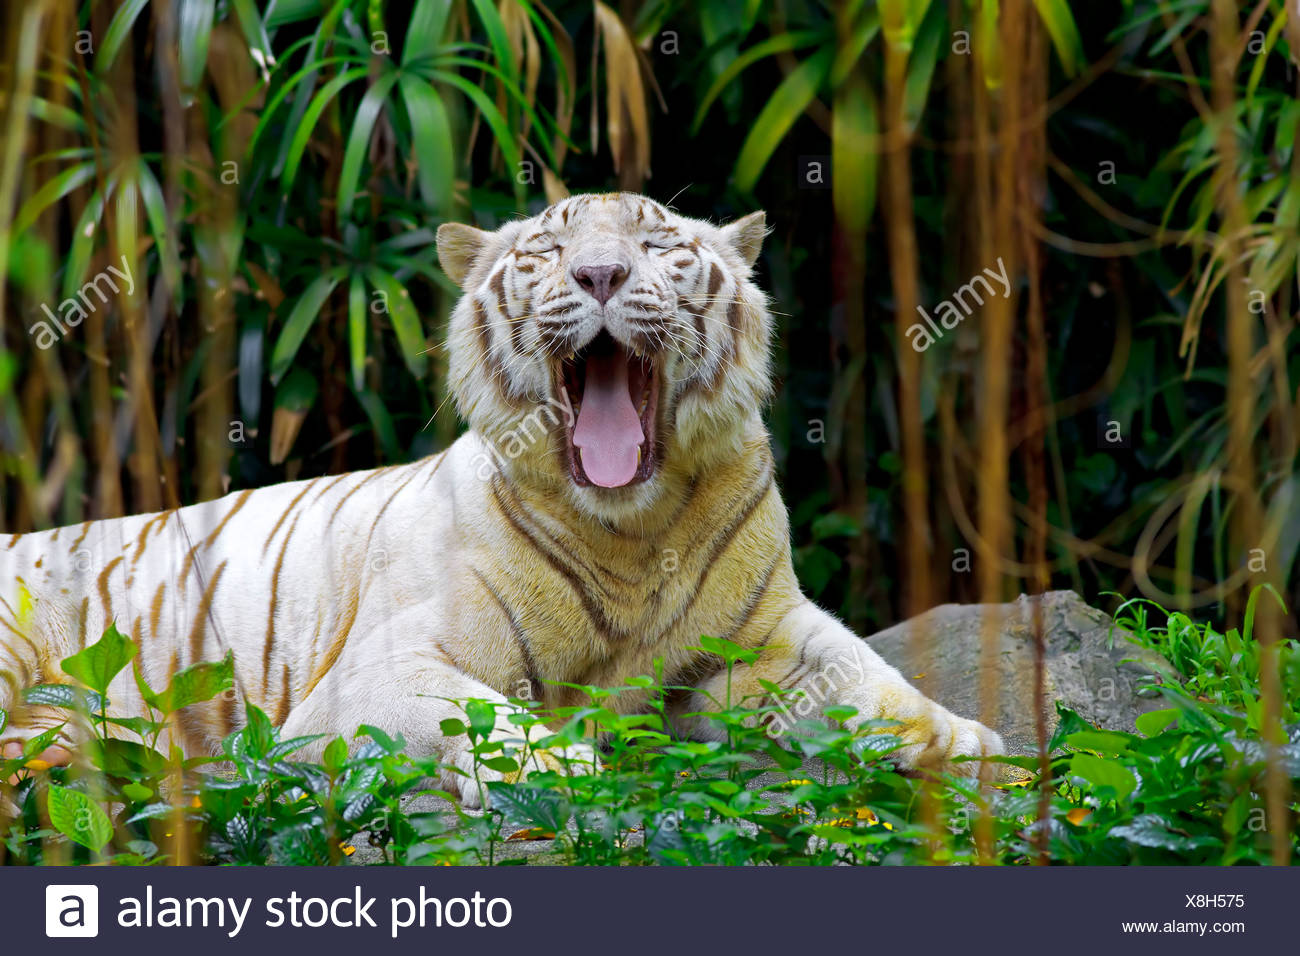 roaring tiger stock photos & roaring tiger stock images - alamy